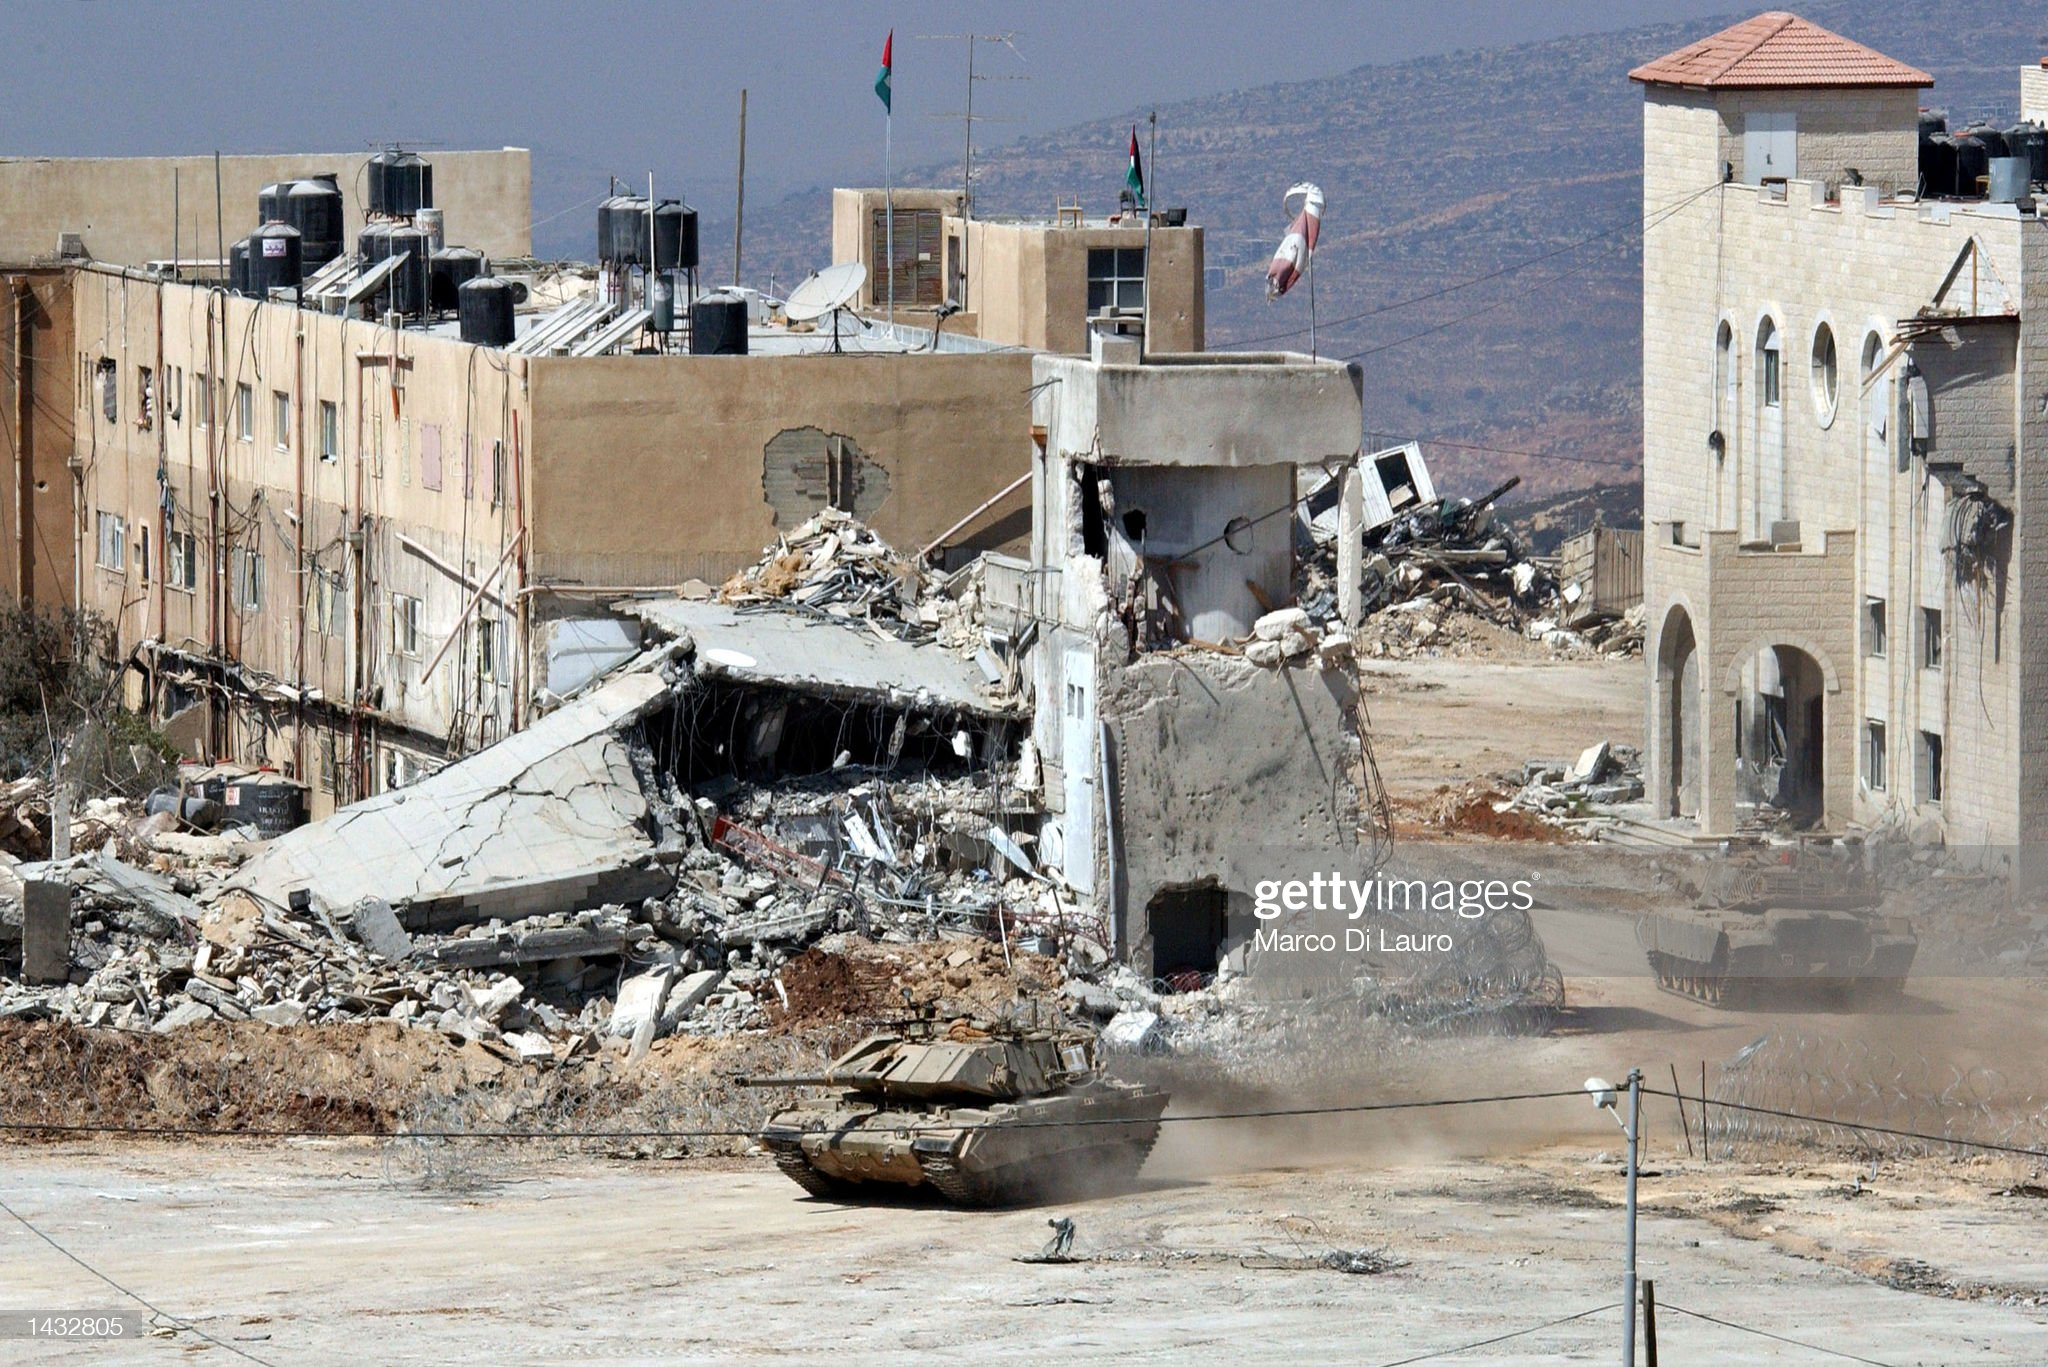 https://media.gettyimages.com/photos/israeli-army-tanks-roll-into-palestinian-leader-yasser-arafats-26-picture-id1432805?s=2048x2048